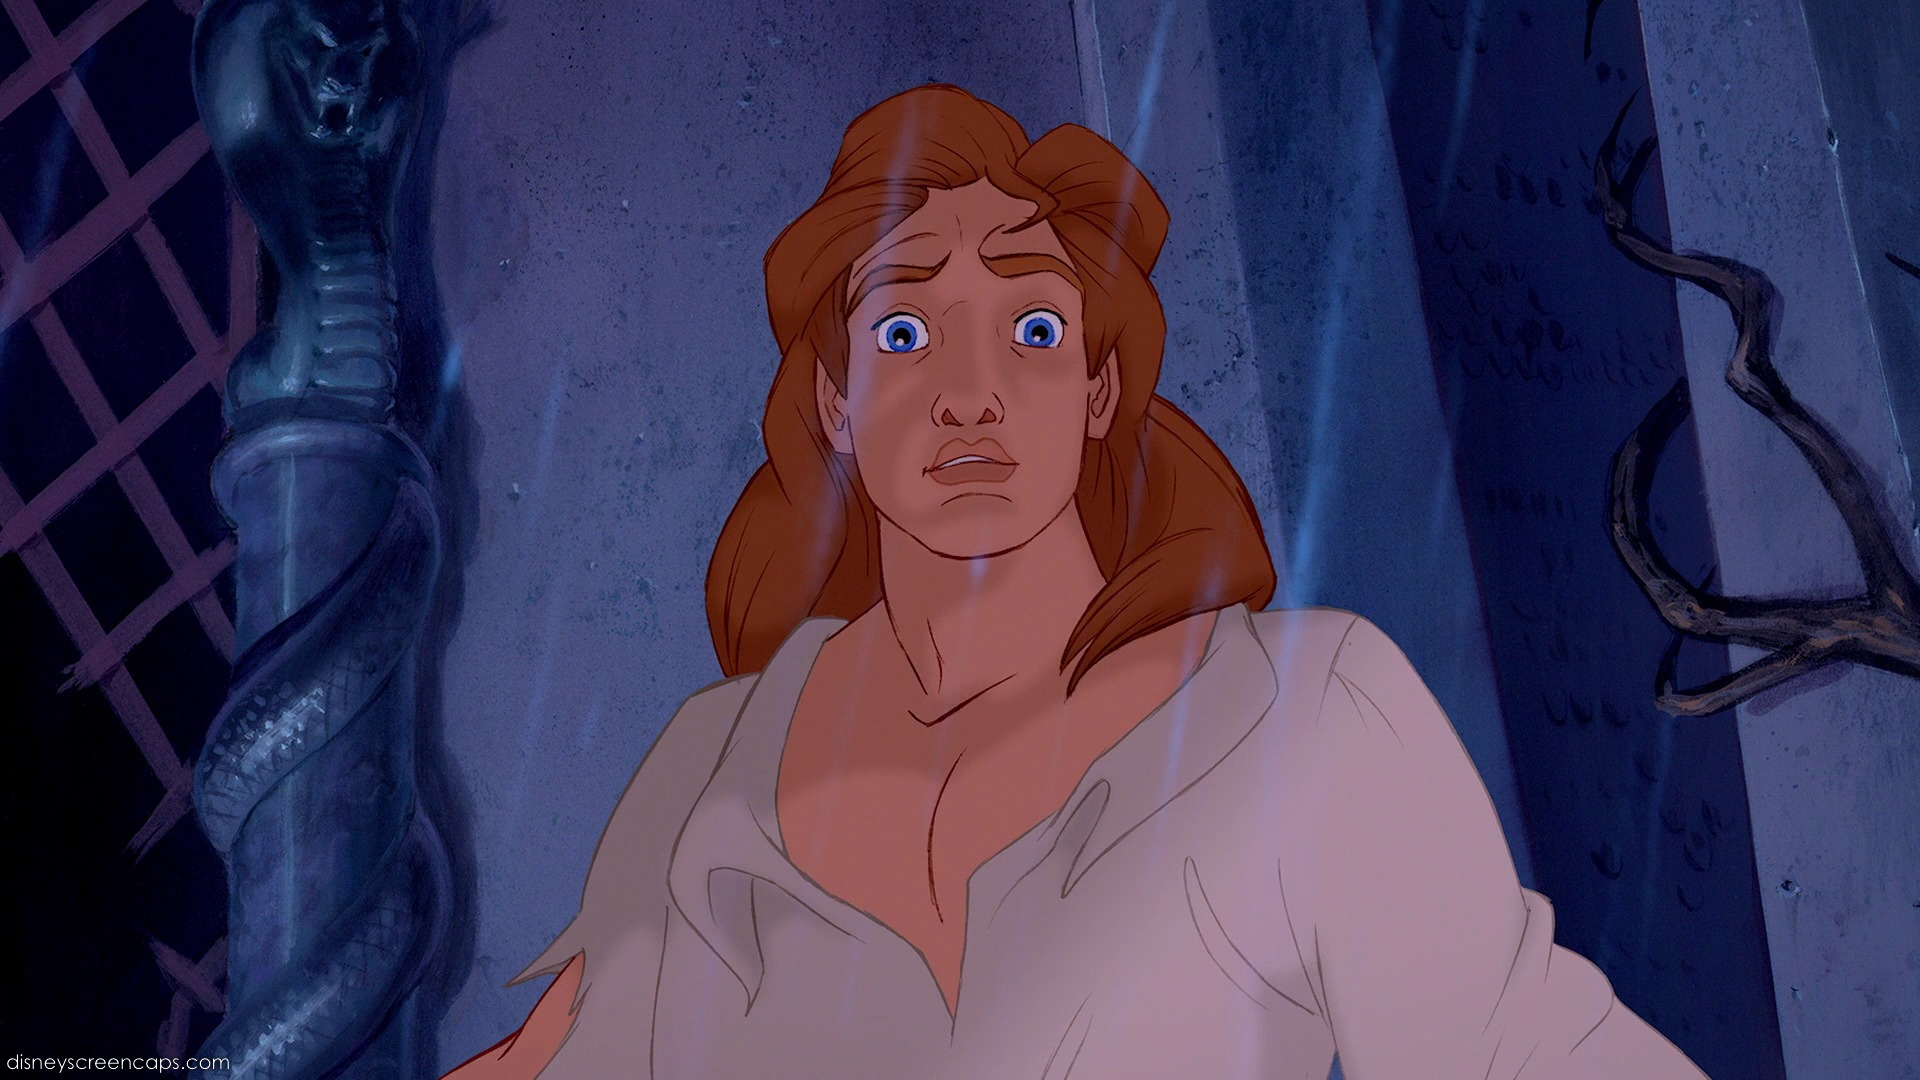 prince adam the beast disney prince photo 29841128